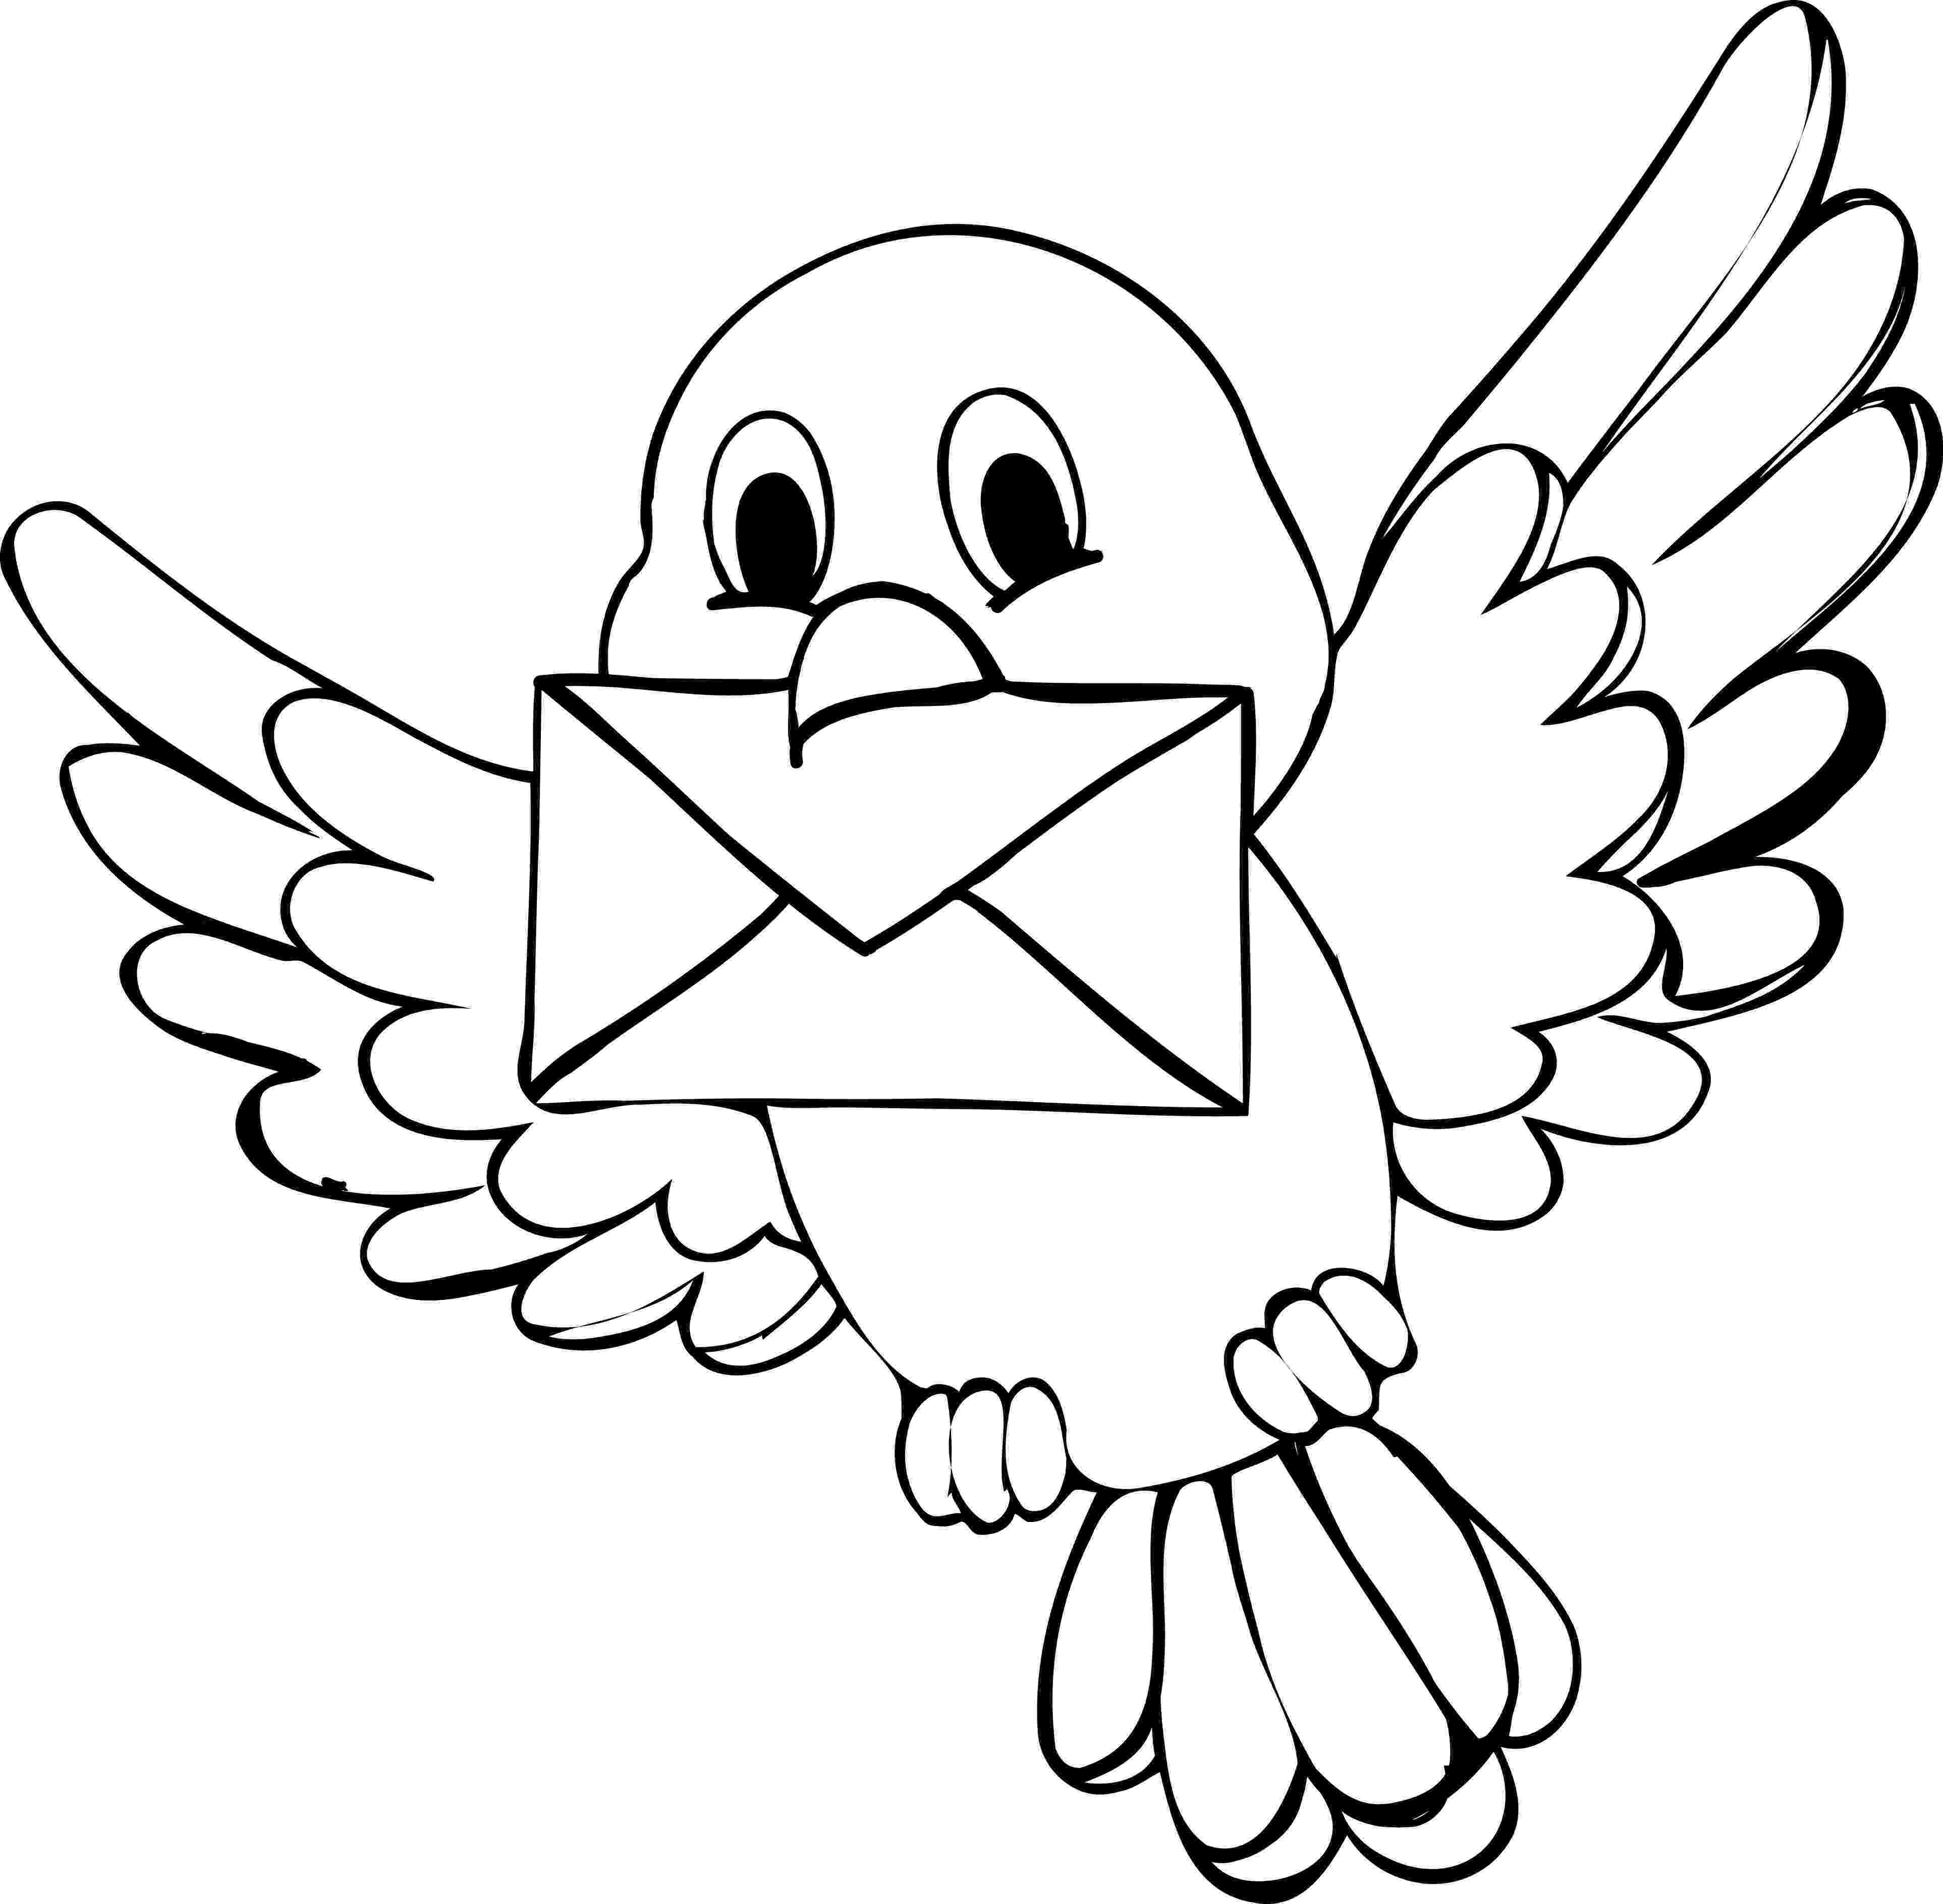 colouring picture bird line art coloring page bird with blossoms the picture colouring bird